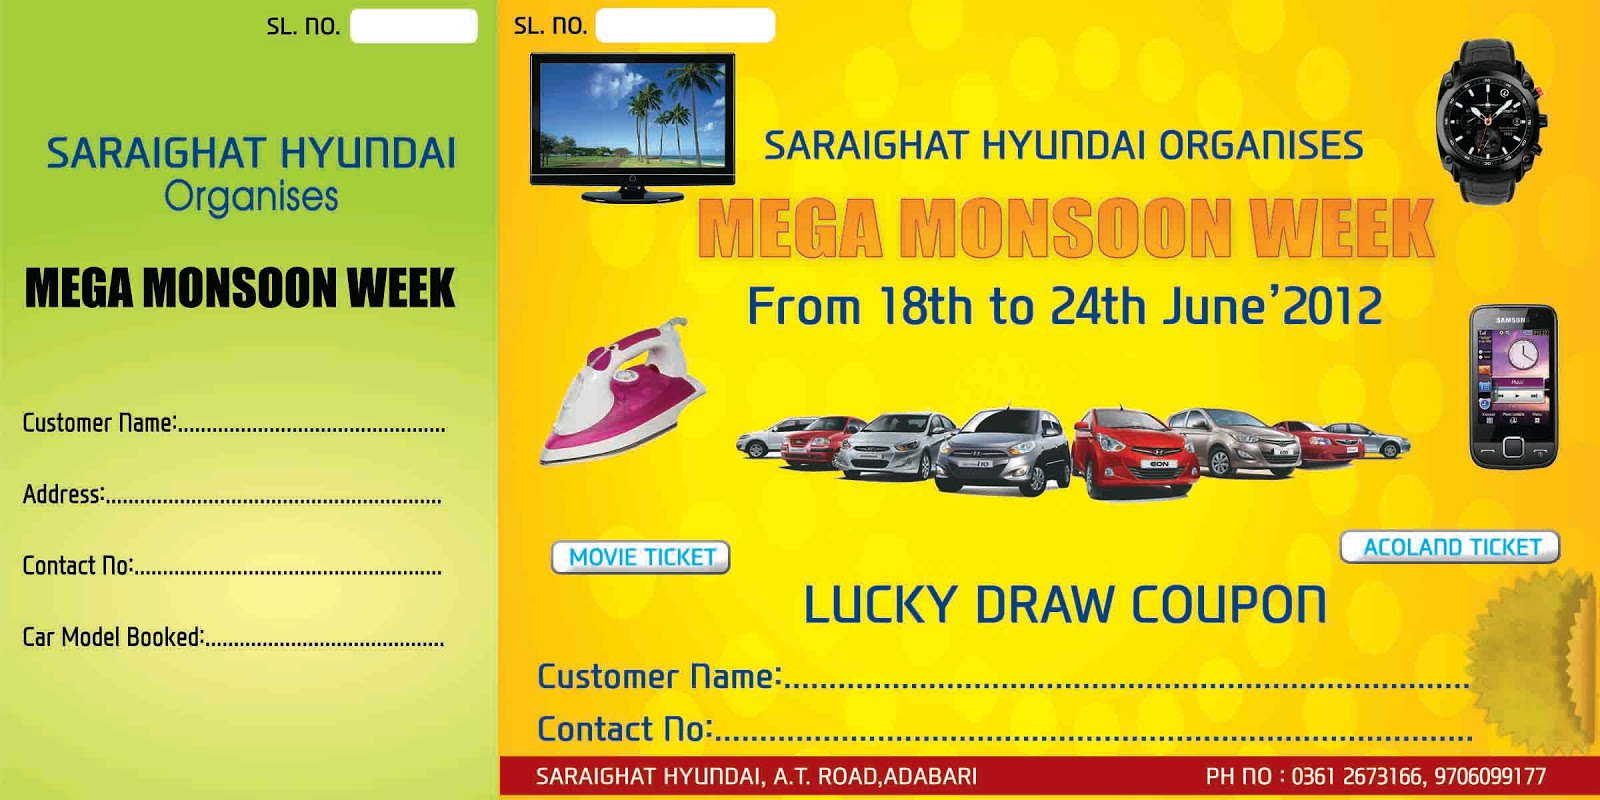 lucky draw coupons